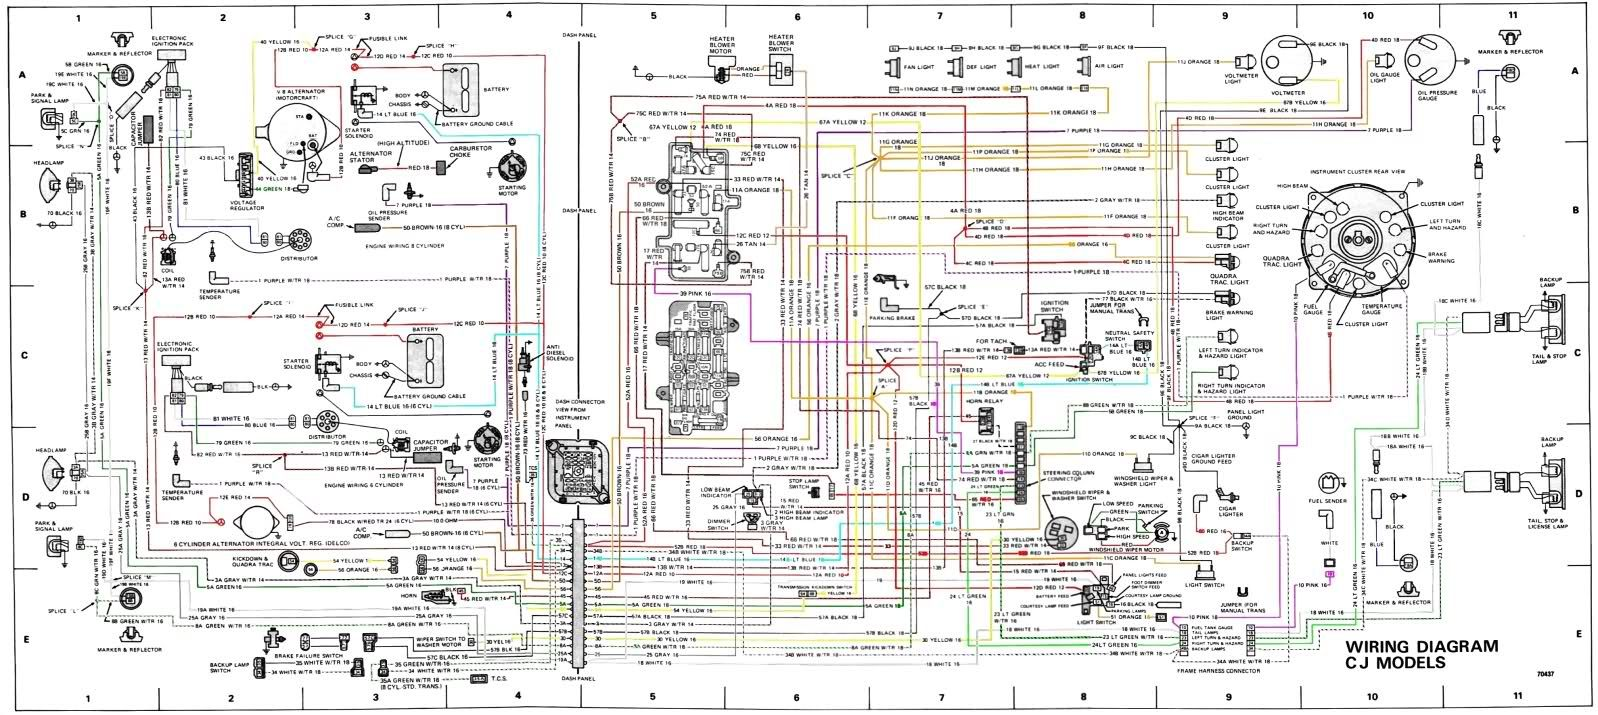 1983 jeep cj7 diagrams wiring diagram data Wiring a Non-Computer 700R4